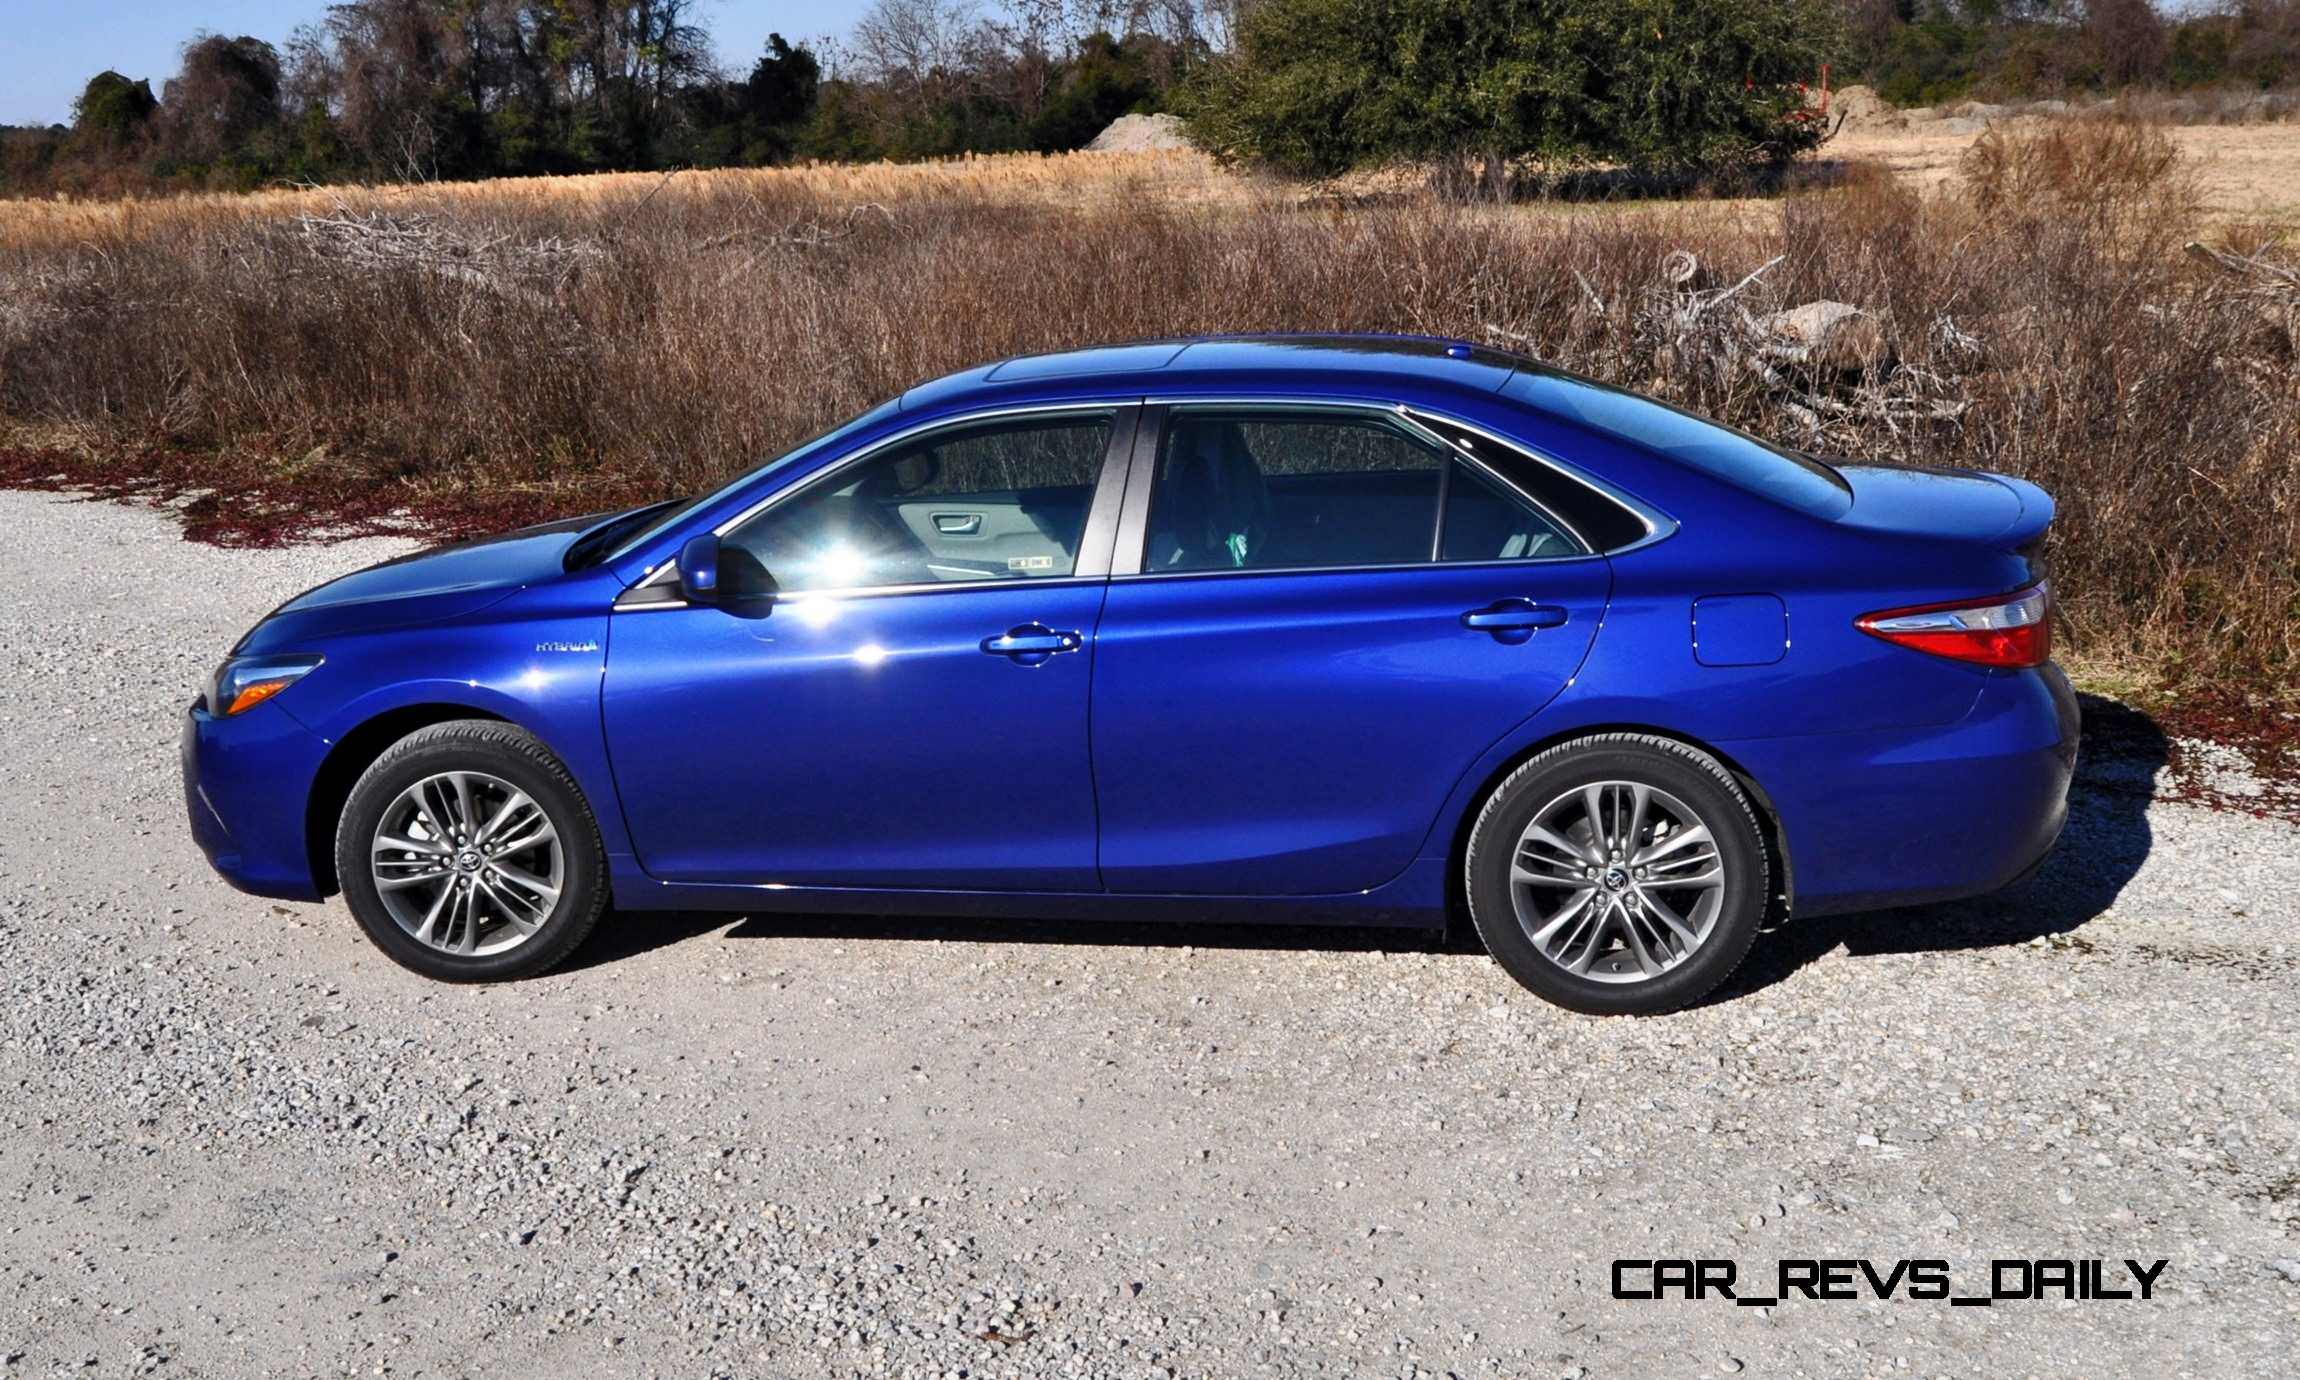 2015 Toyota Camry SE Hybrid Review 54 – Car-Revs-Daily.com